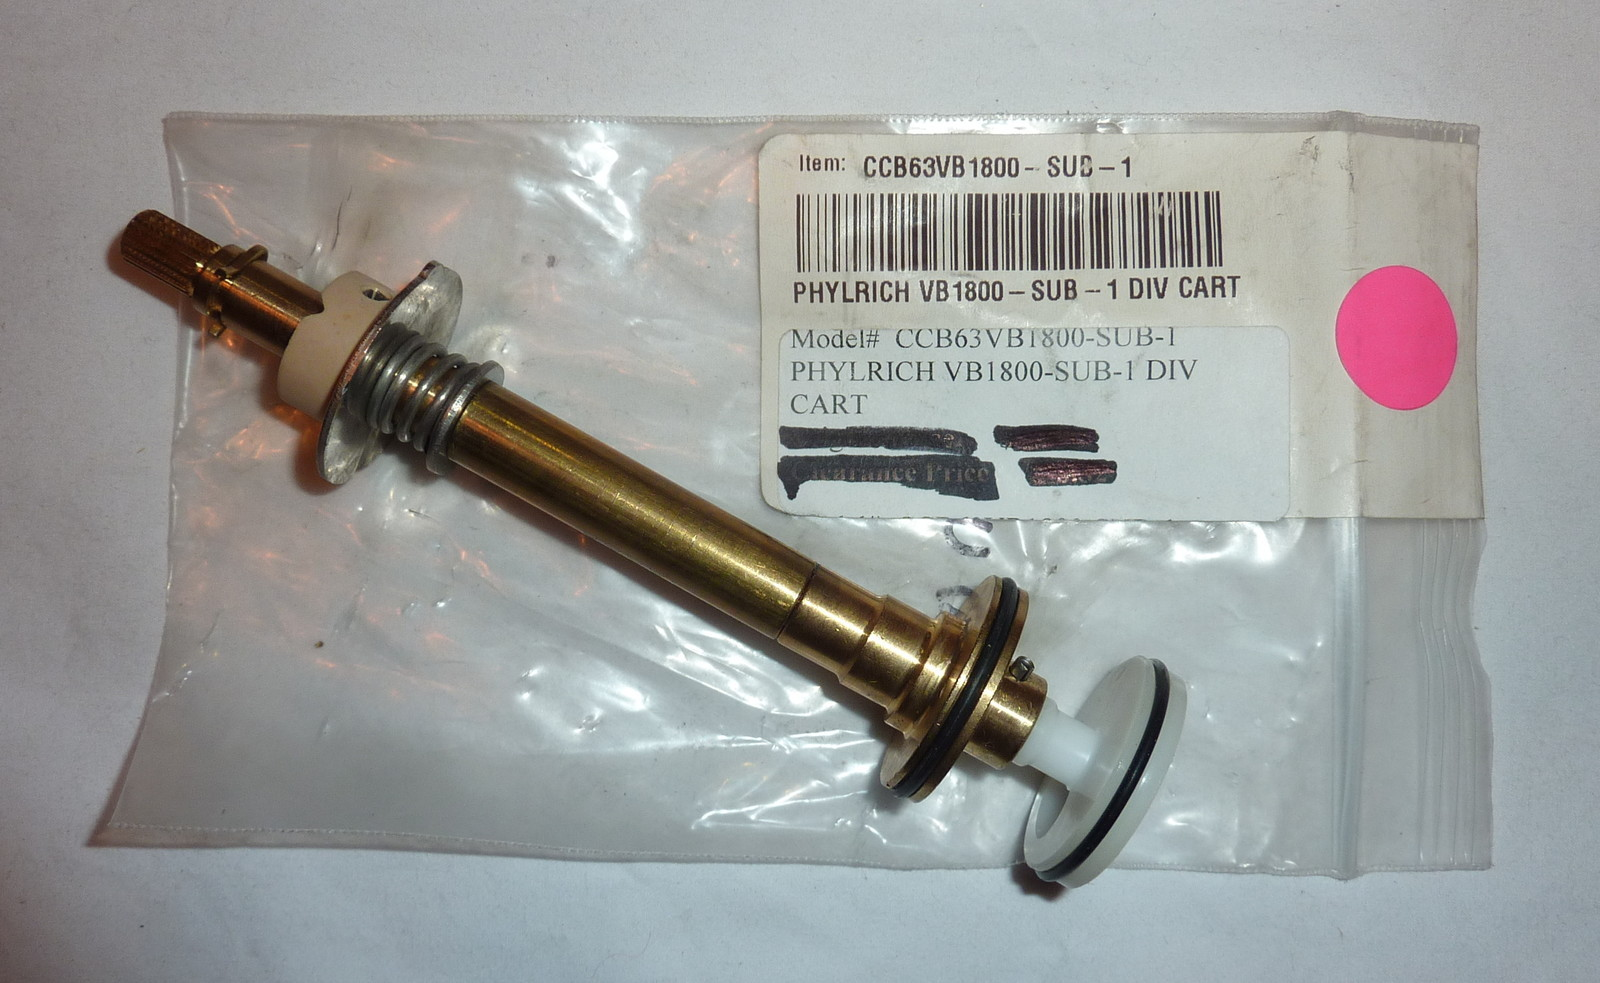 Phylrich VB1800SUB1 Diverter Assembly - Locke Plumbing